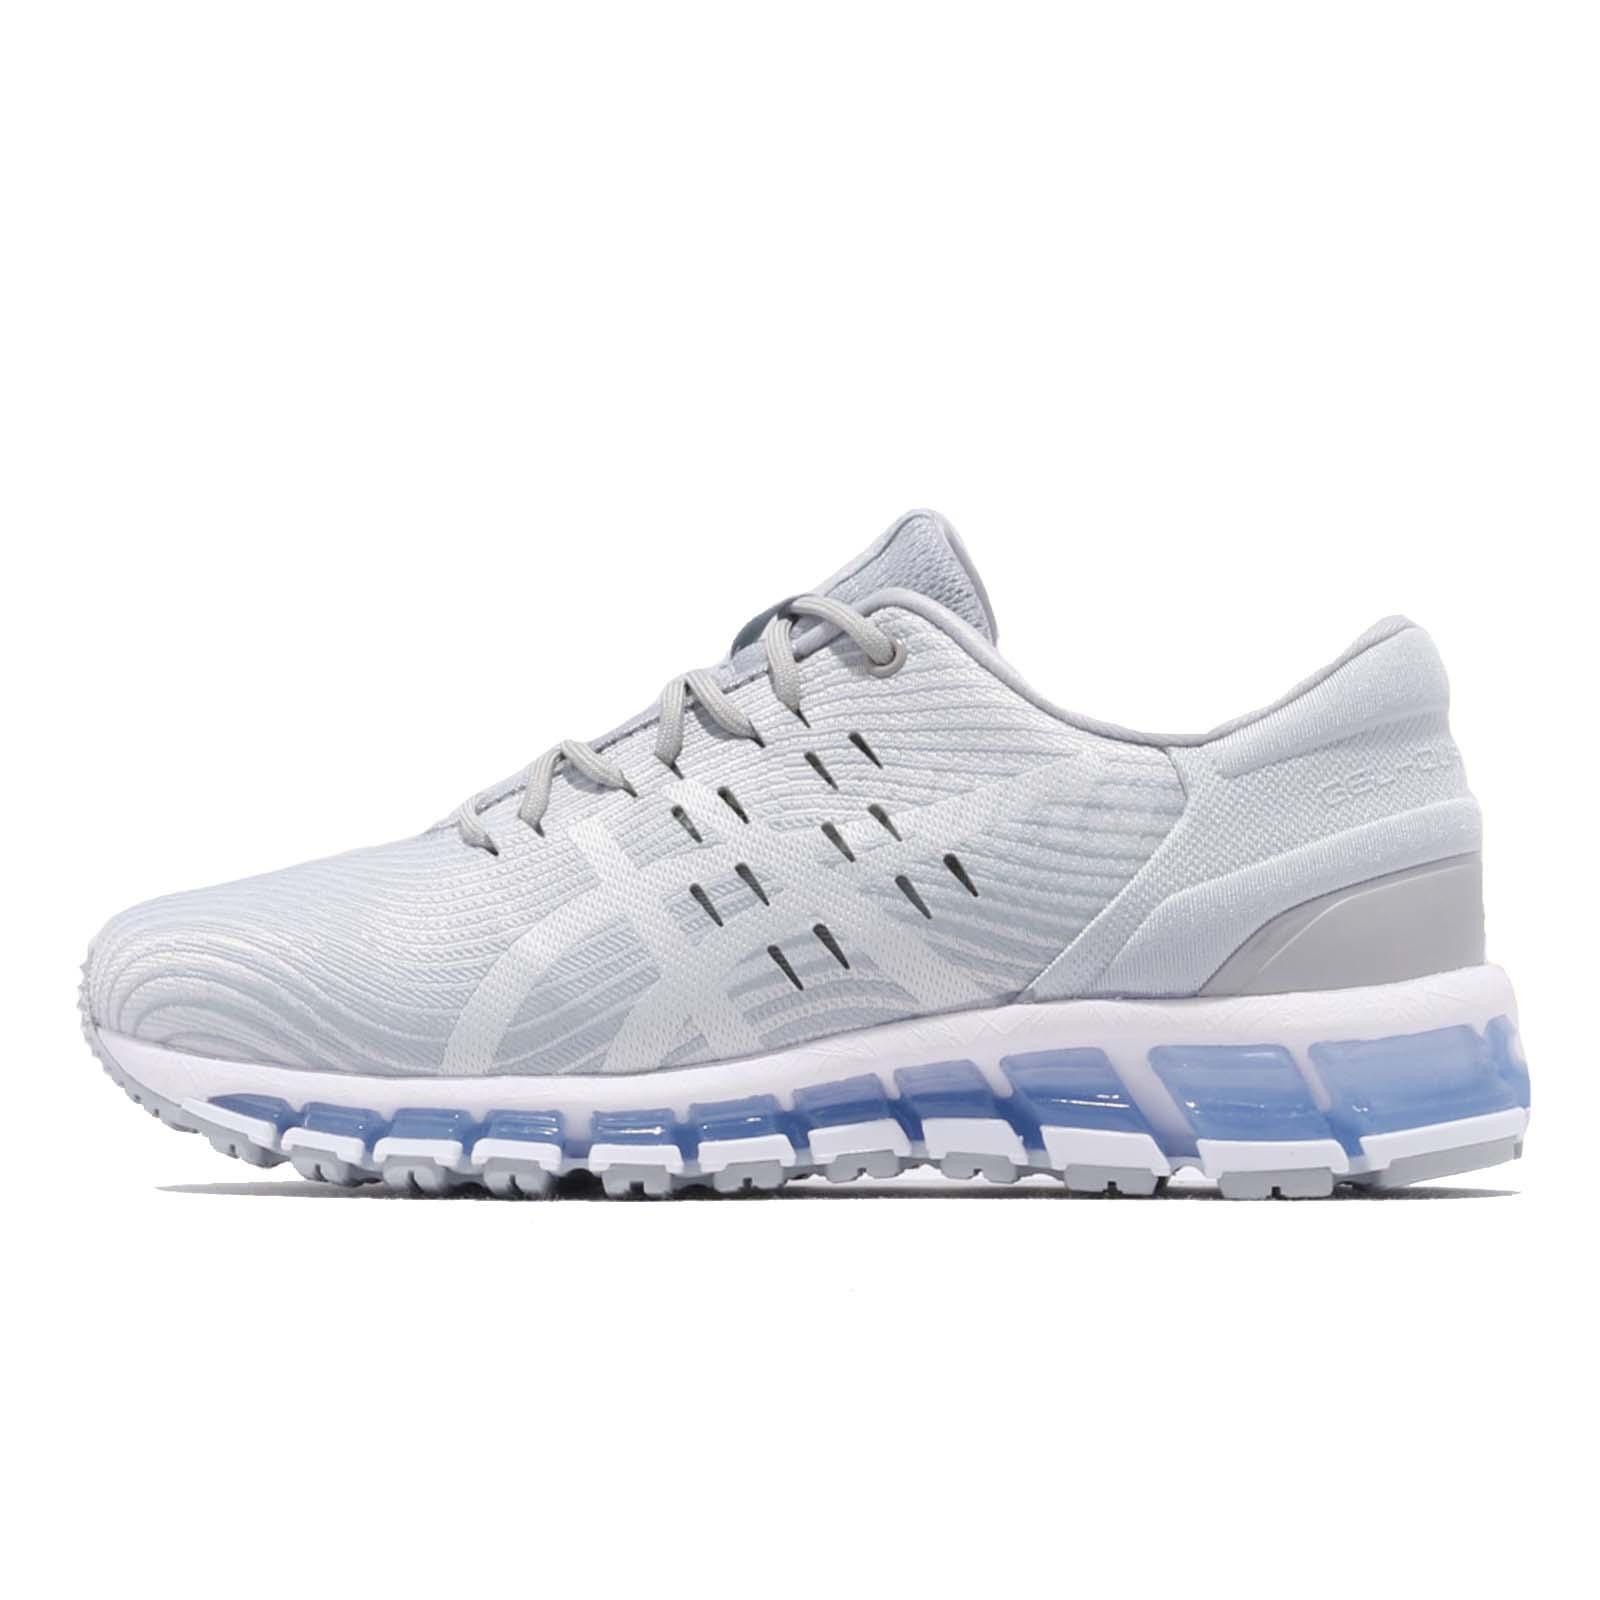 sports shoes 8dfa8 0fdd4 Details about Asics Gel Quantum 360 4 Glacier Grey Women Running Shoes  Sneakers 1022A029-022